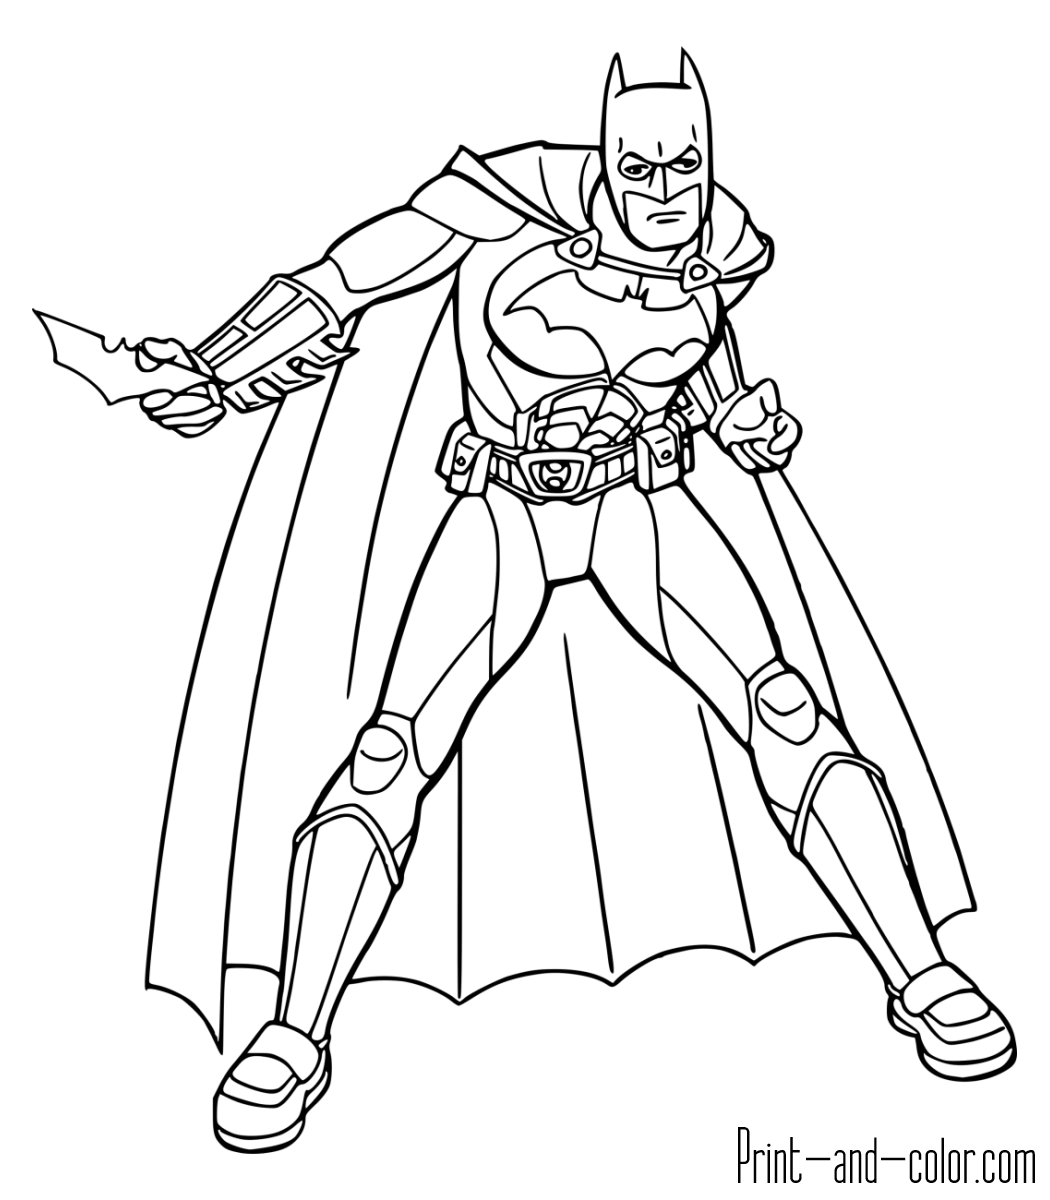 Batman colouring in pictures